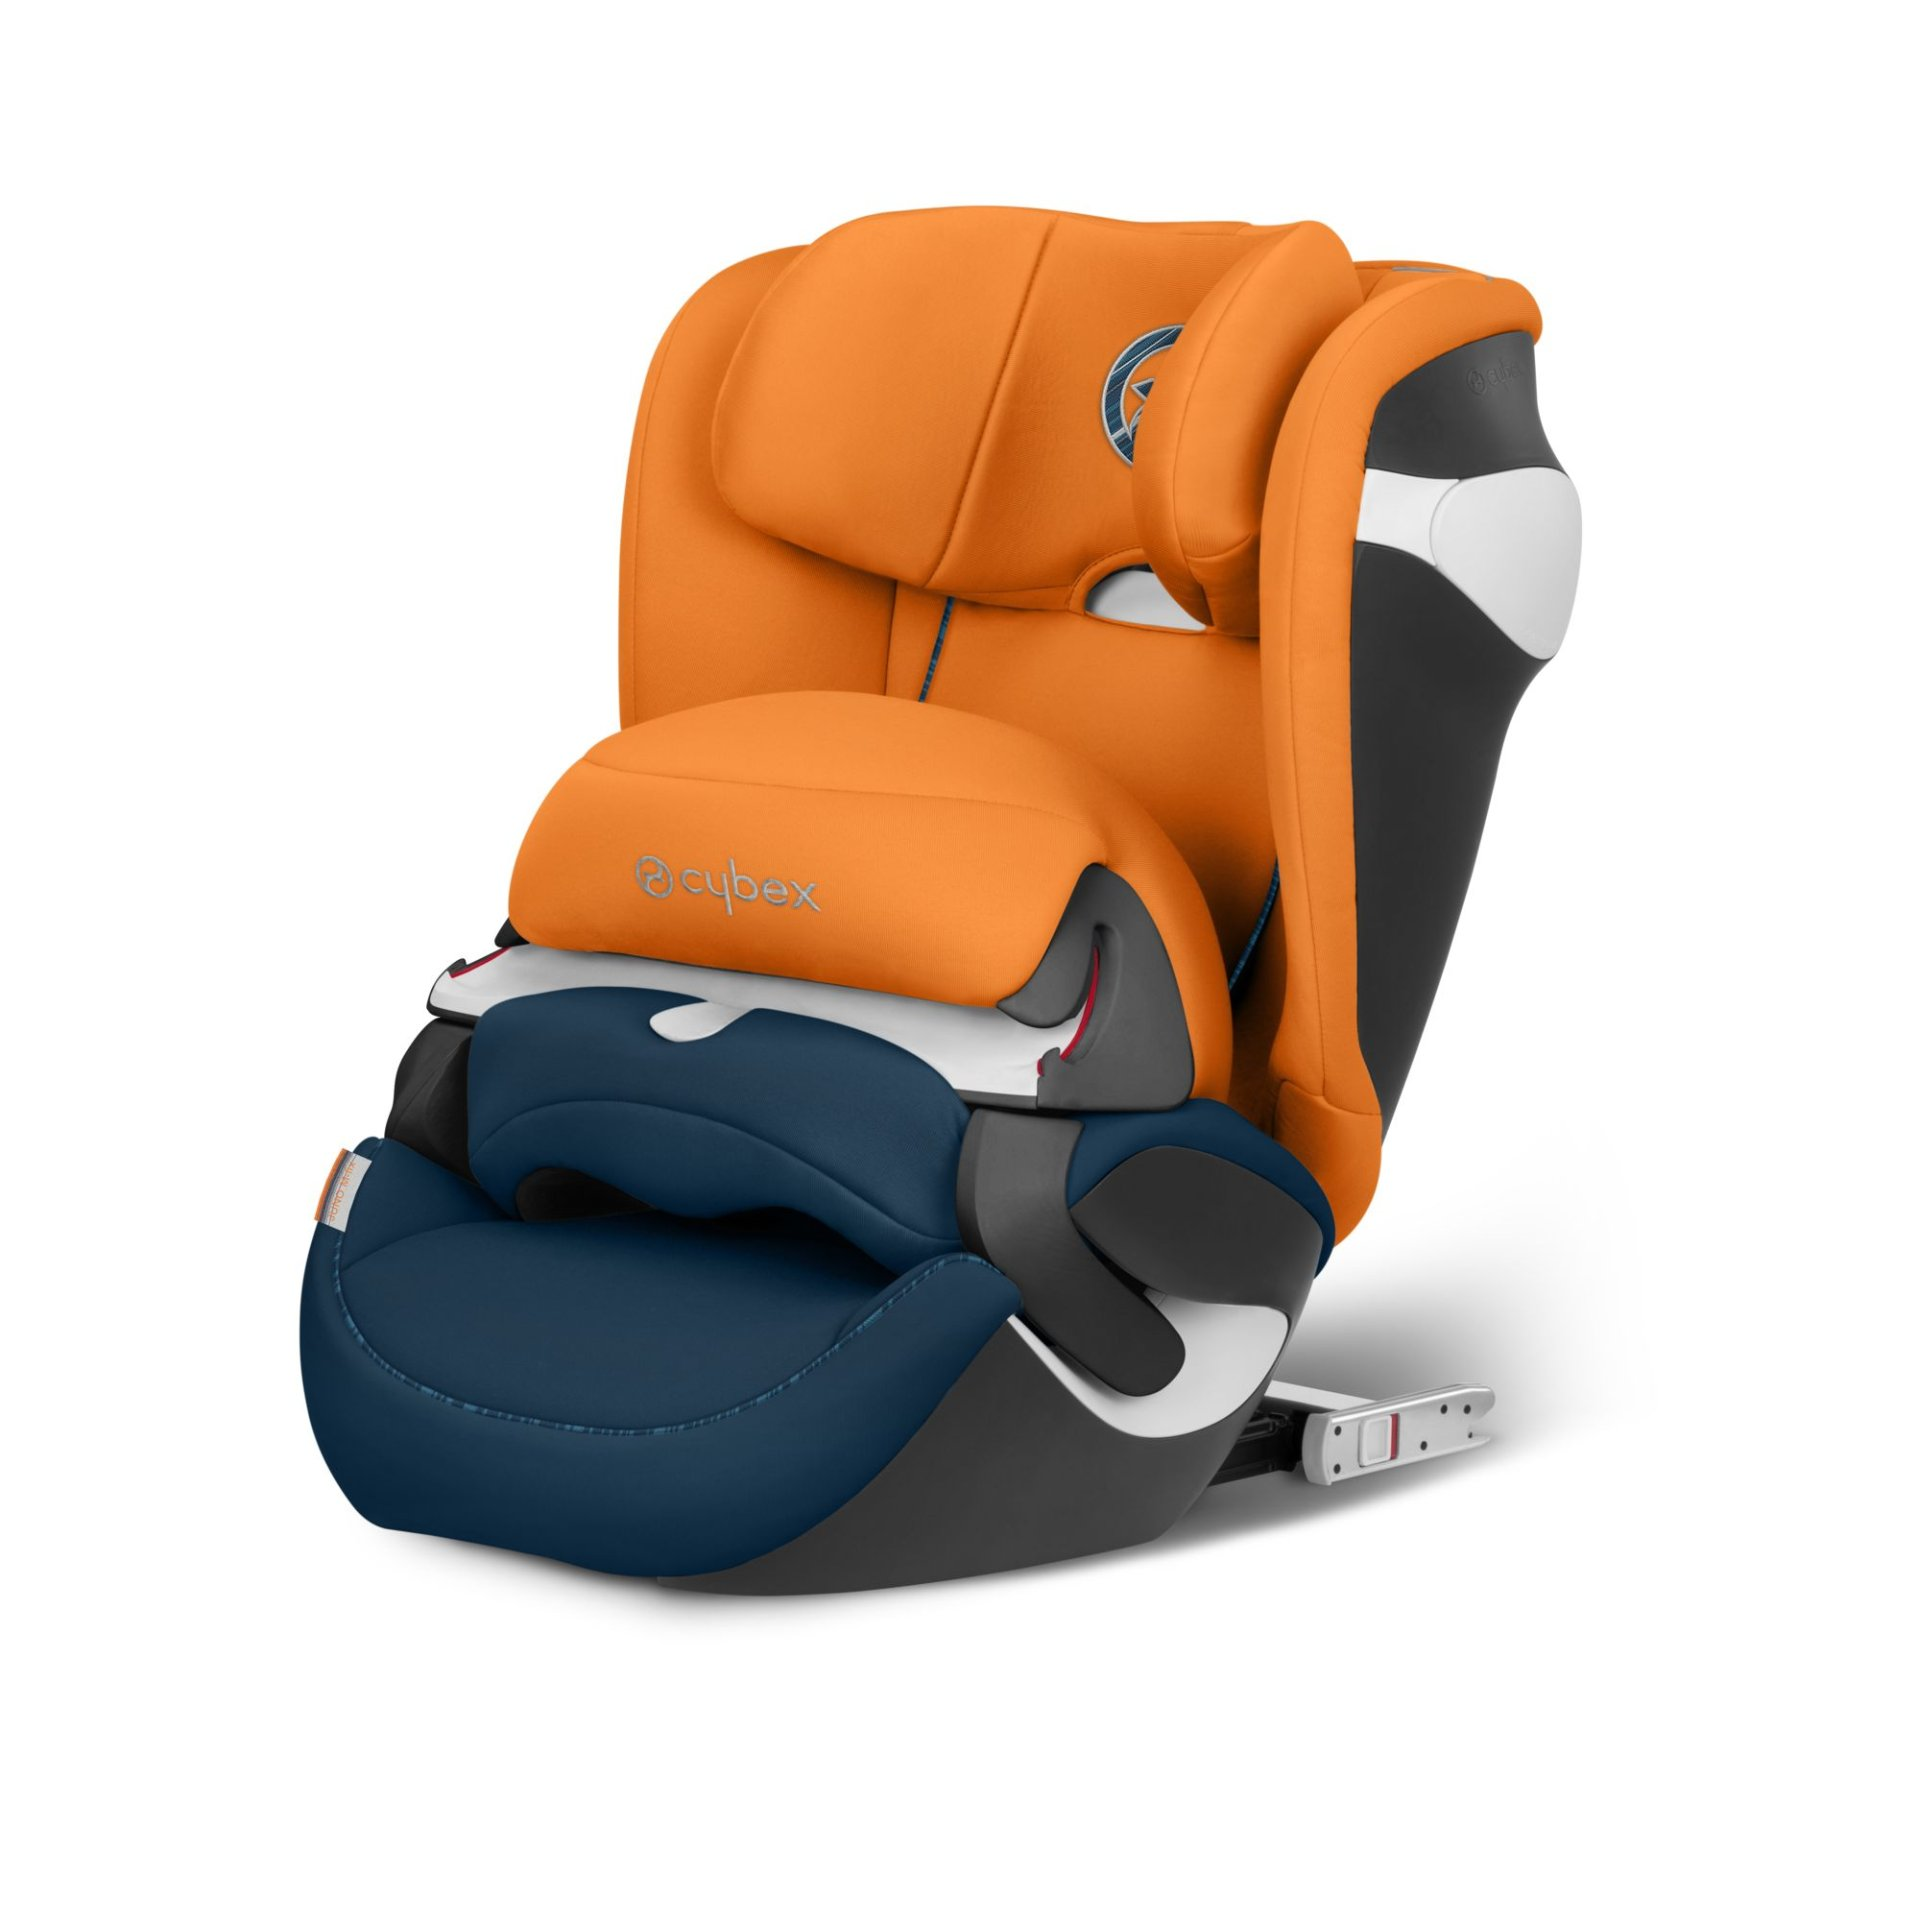 cybex car seat juno m fix buy at kidsroom car seats. Black Bedroom Furniture Sets. Home Design Ideas